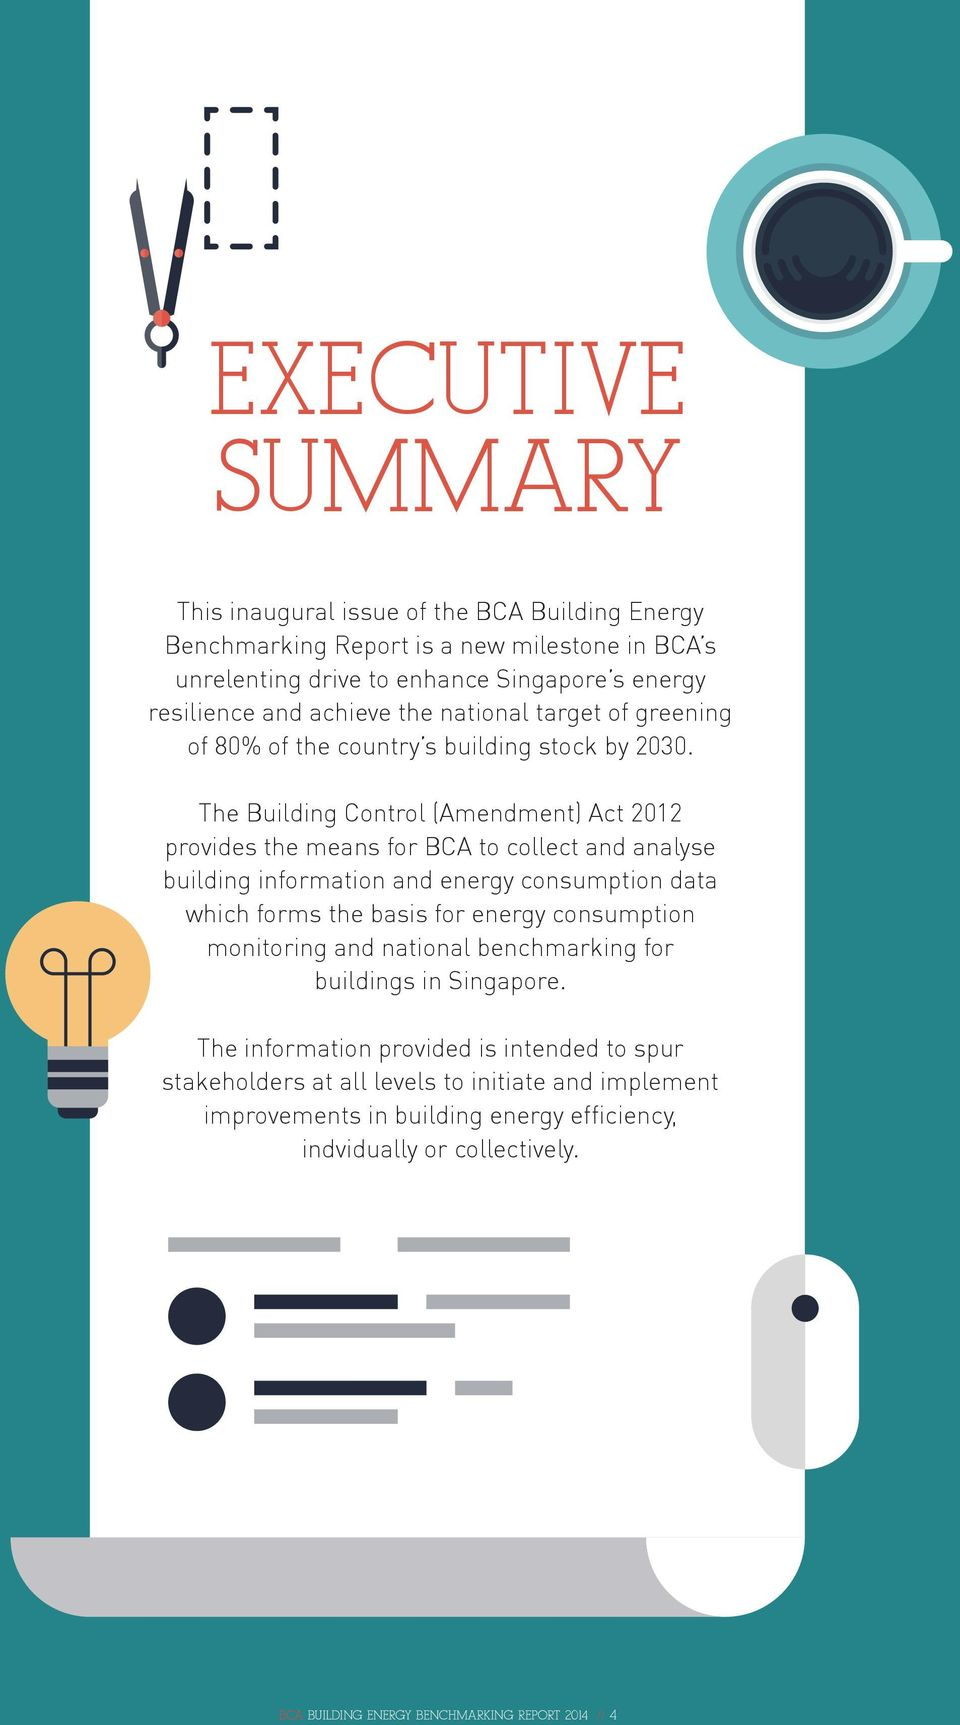 The Building Control (Amendment) Act 2012 provides the means for BCA to collect and analyse building information and energy consumption data which forms the basis for energy